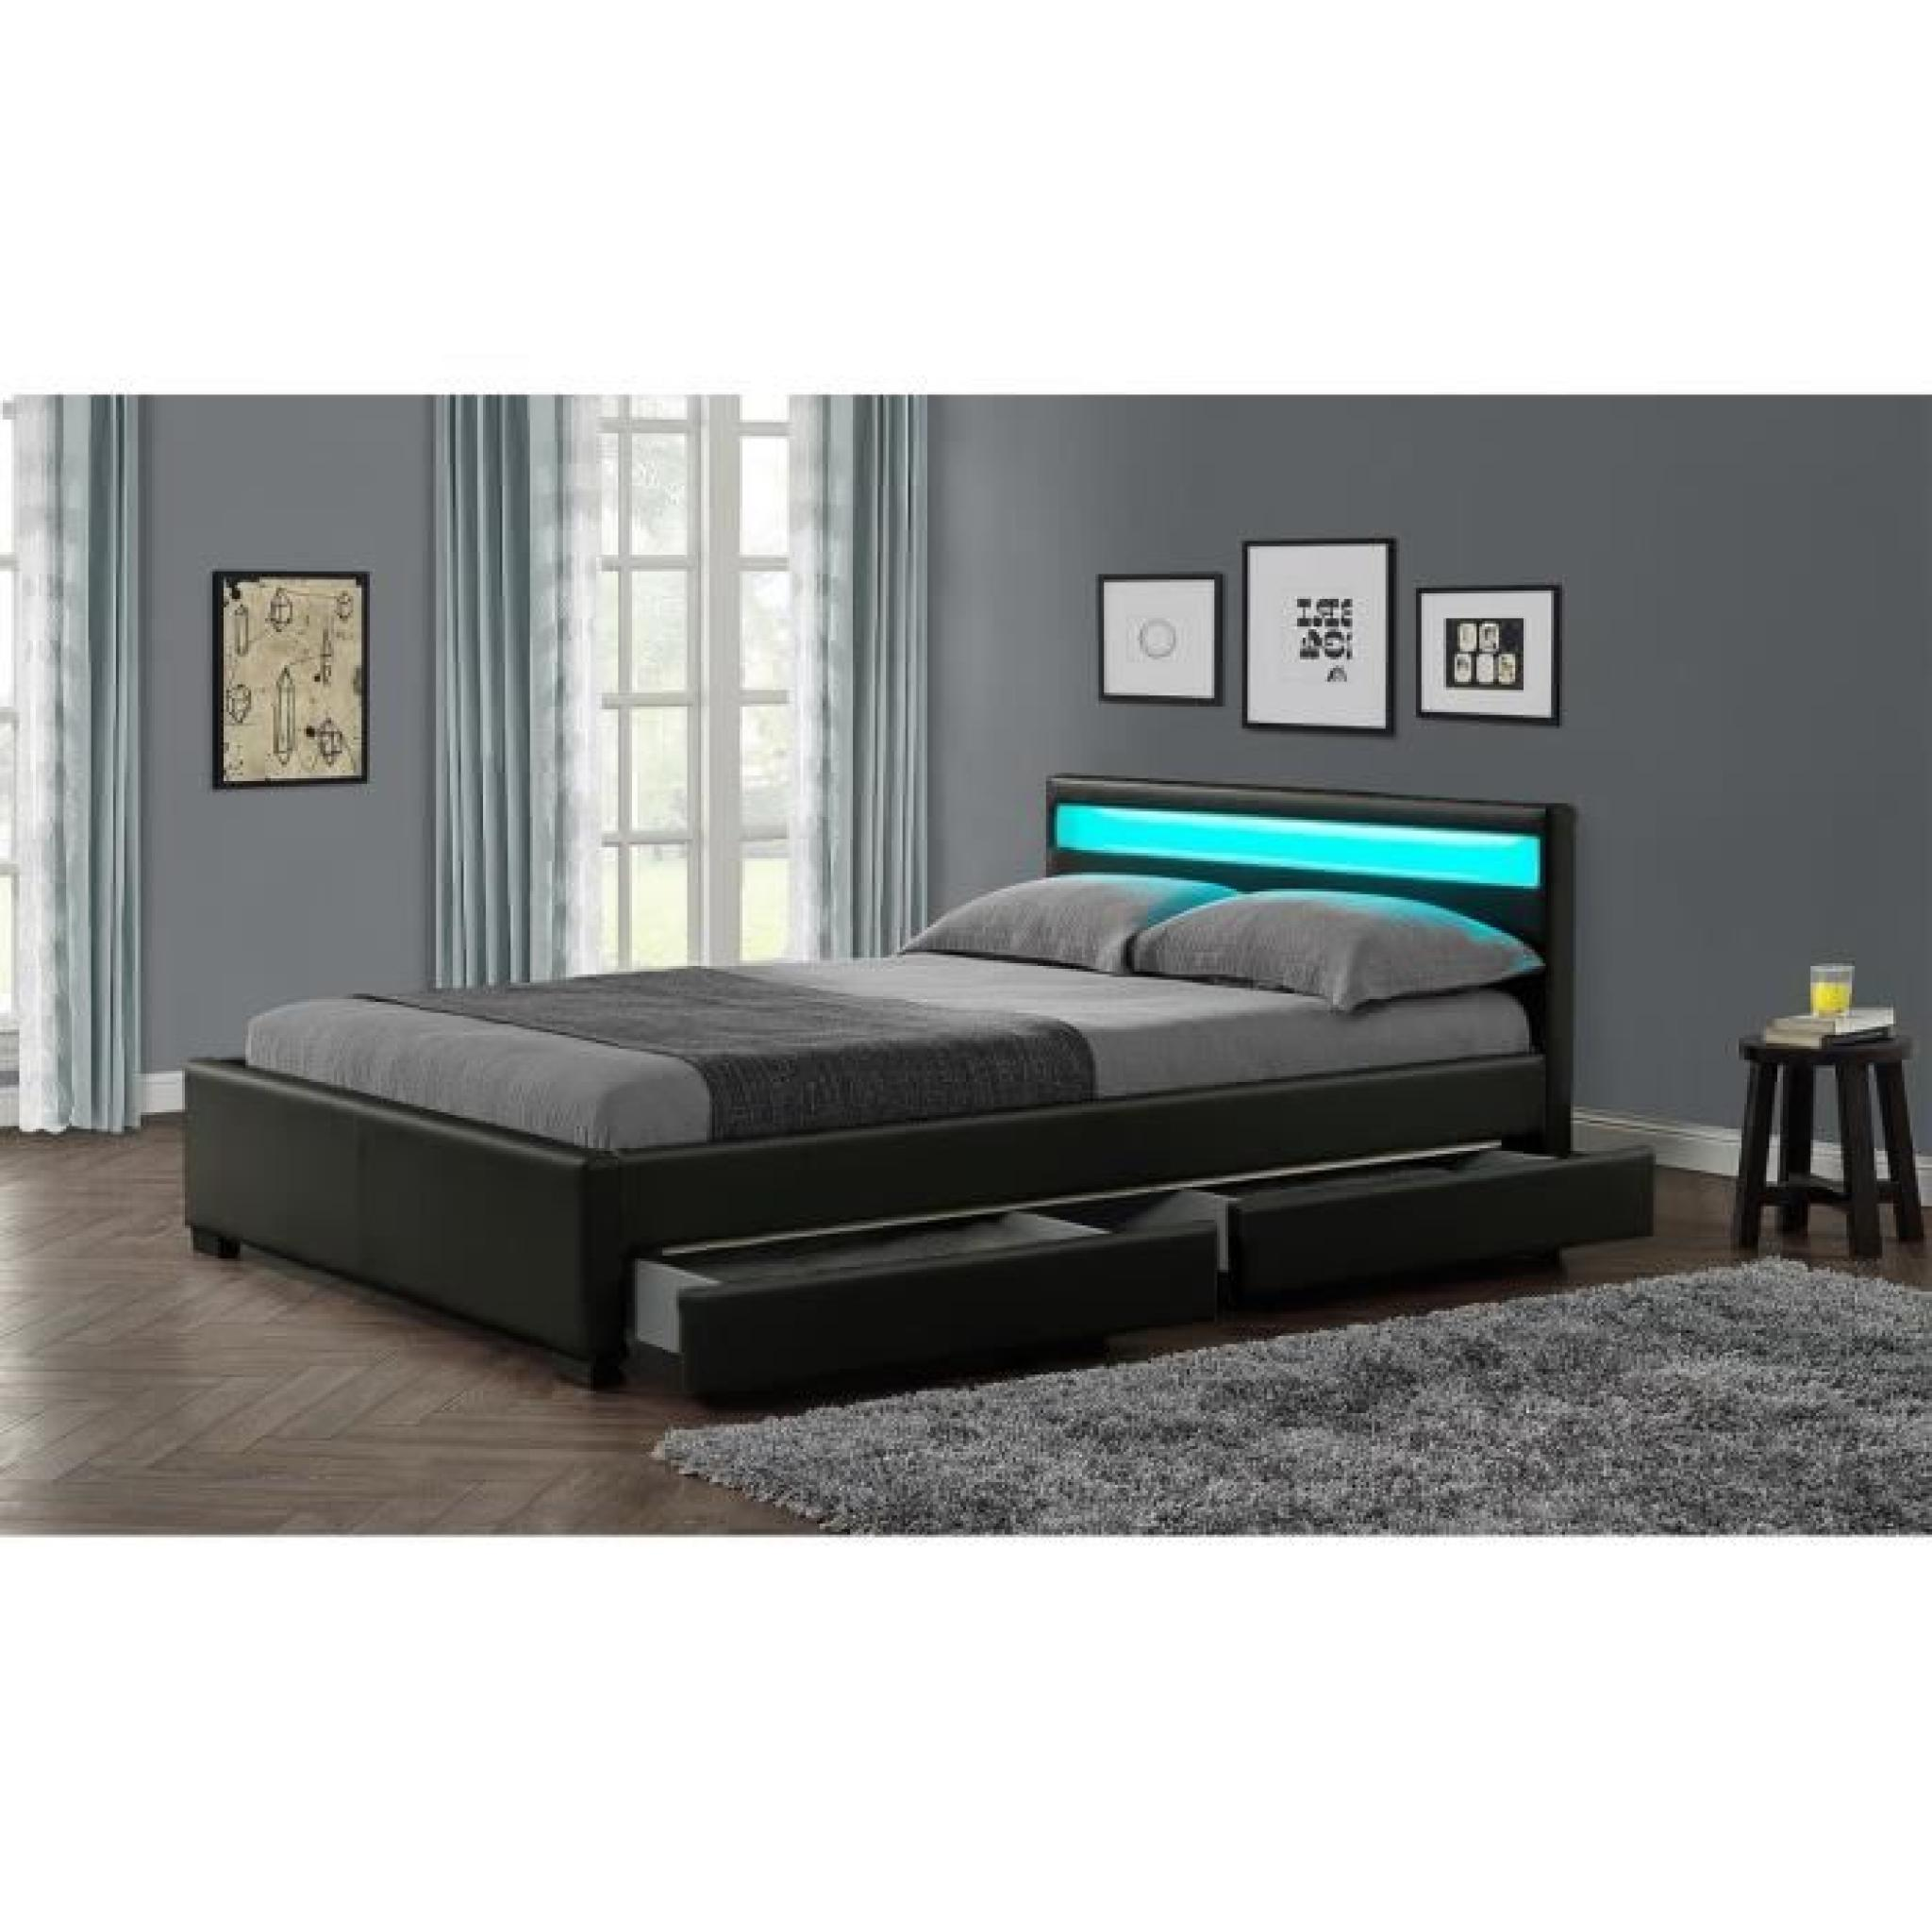 stellar lit adulte tiroirs led 160x200cm noir sommier. Black Bedroom Furniture Sets. Home Design Ideas